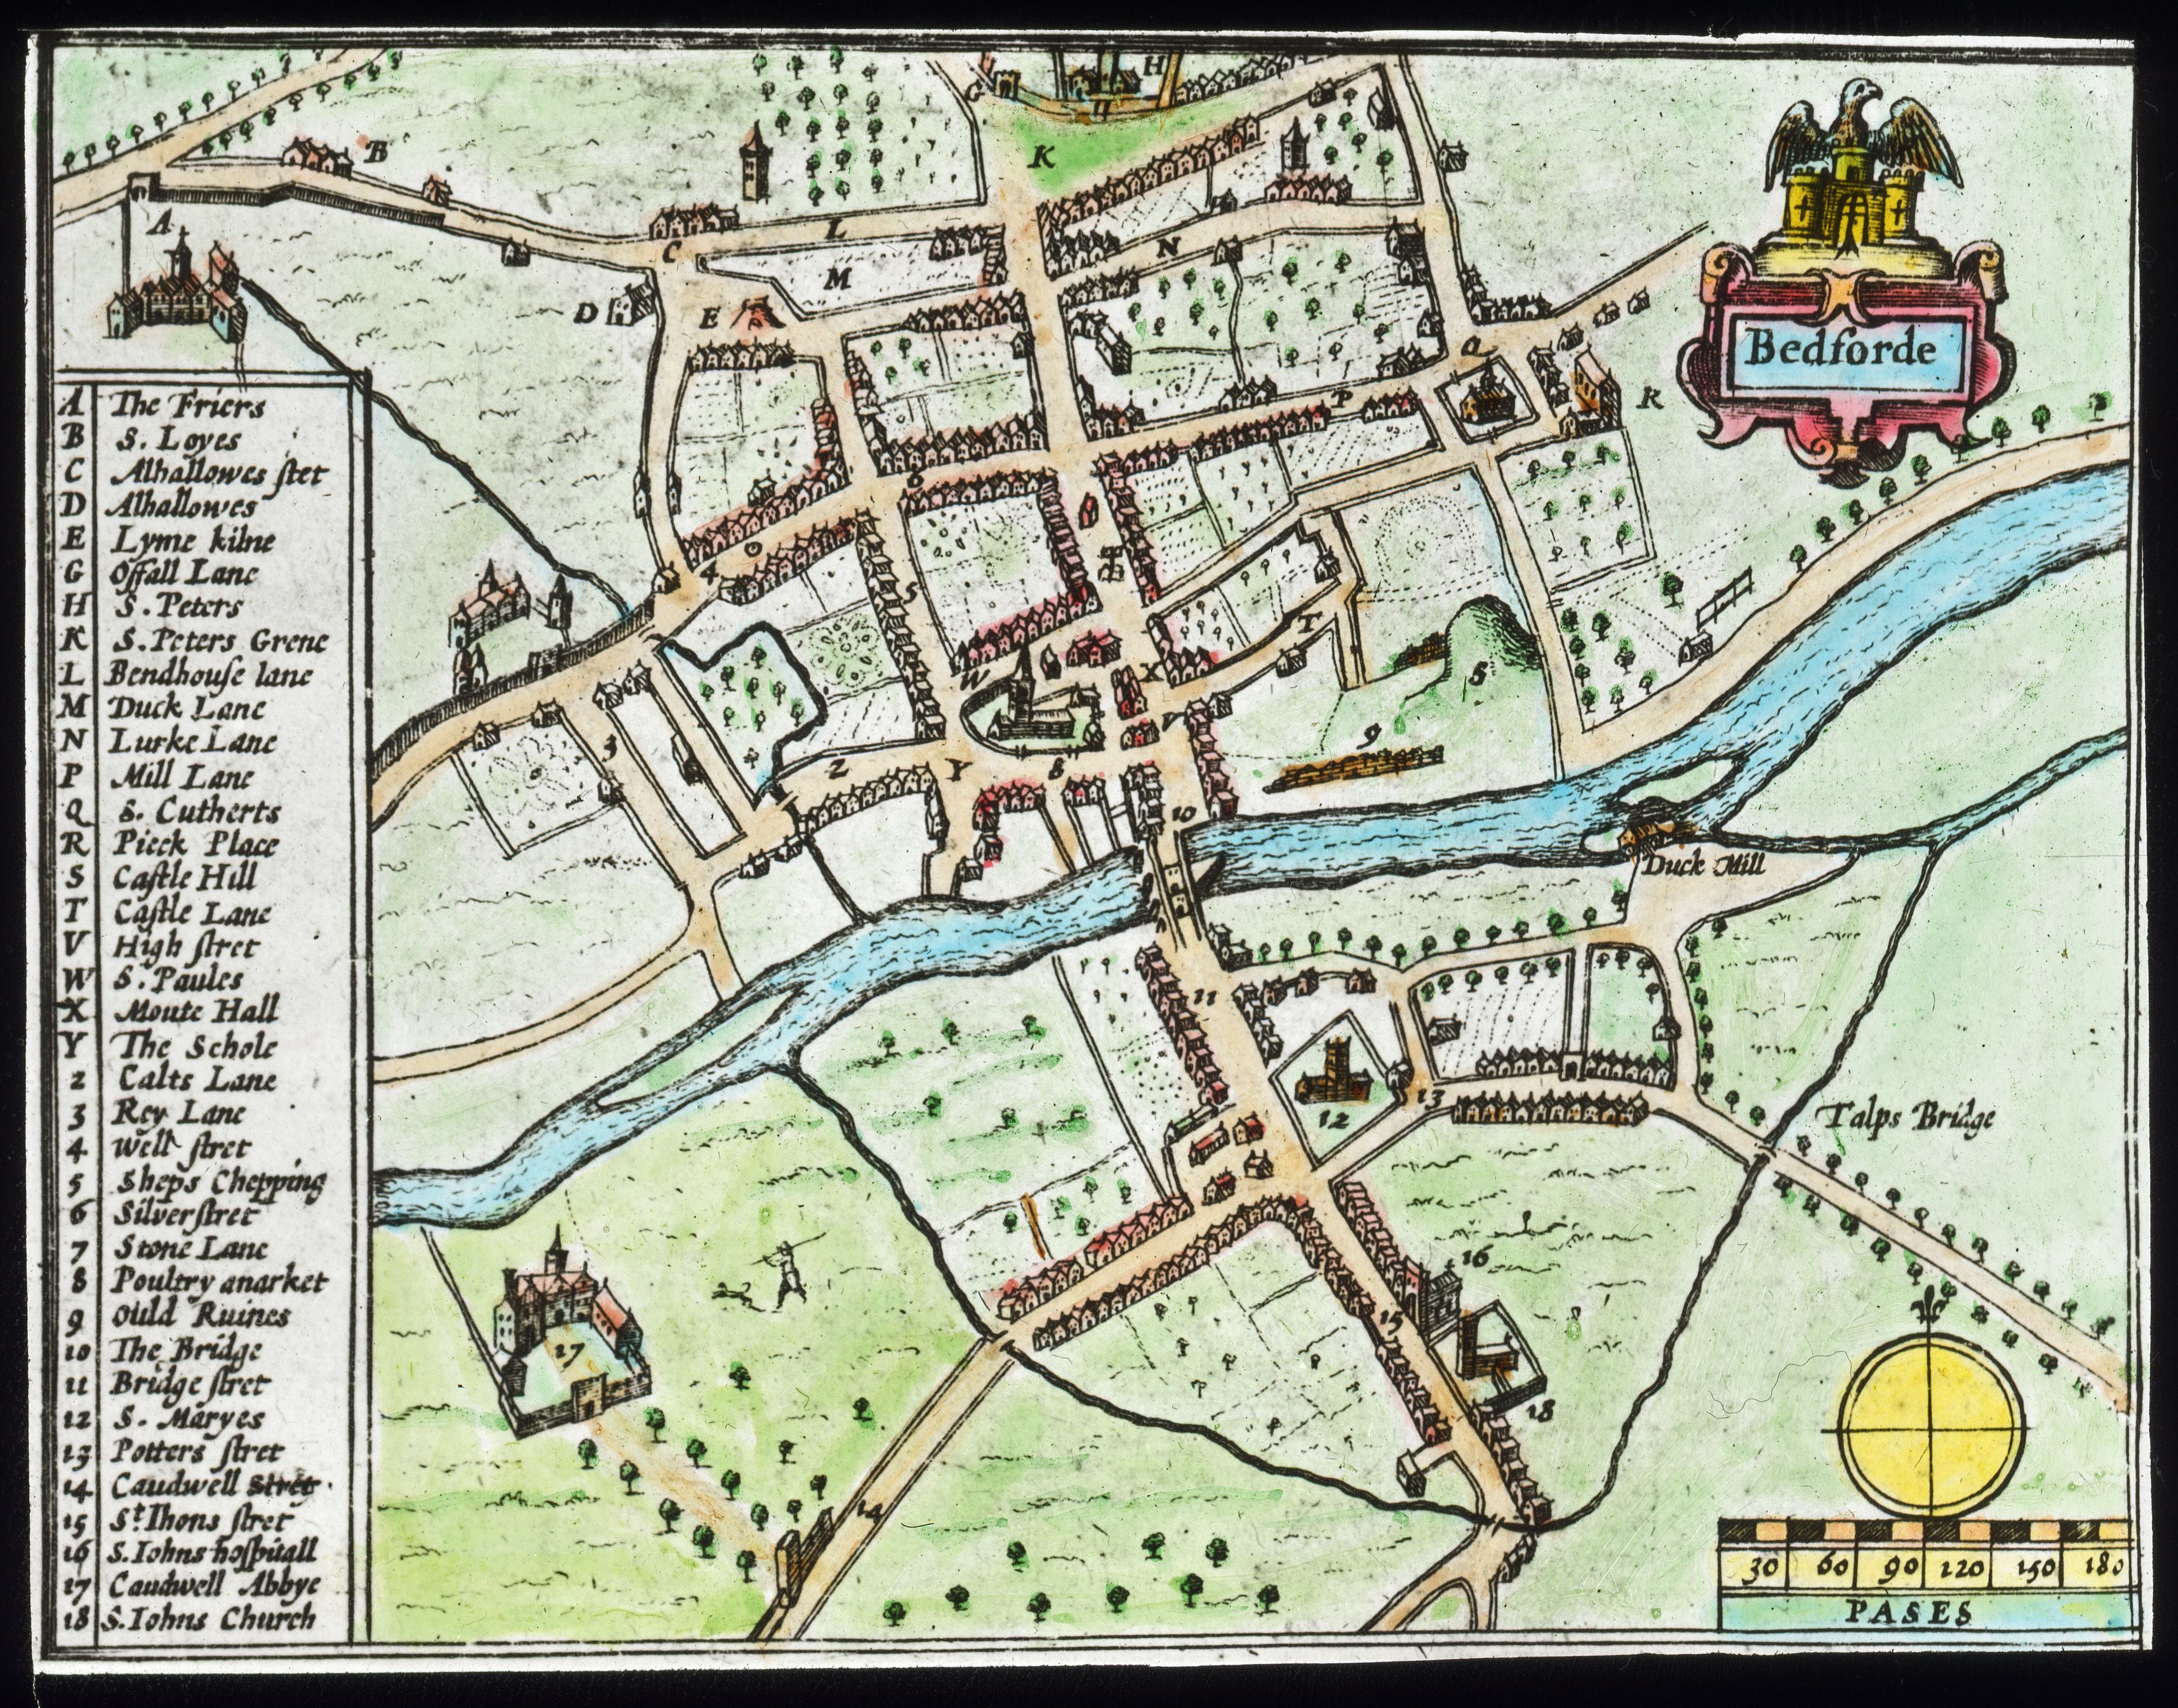 A map of old Bedford by John Speed from 1610 exhibited on the wall